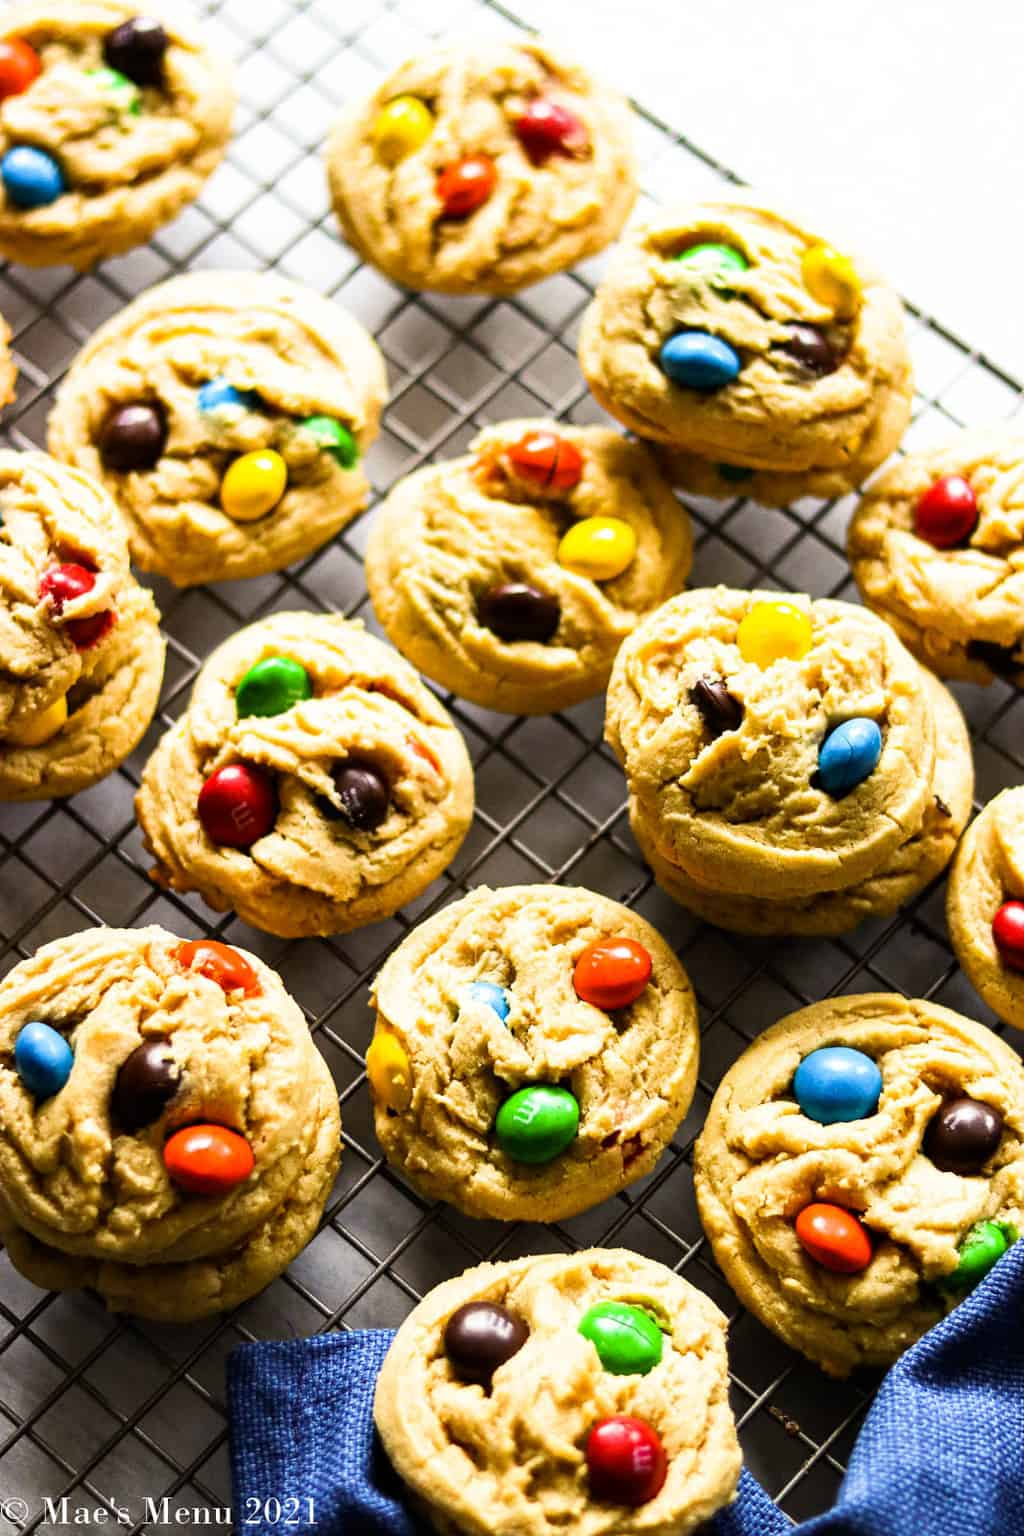 Peanut butter M&M cookies on a cooling rack with a blue towel